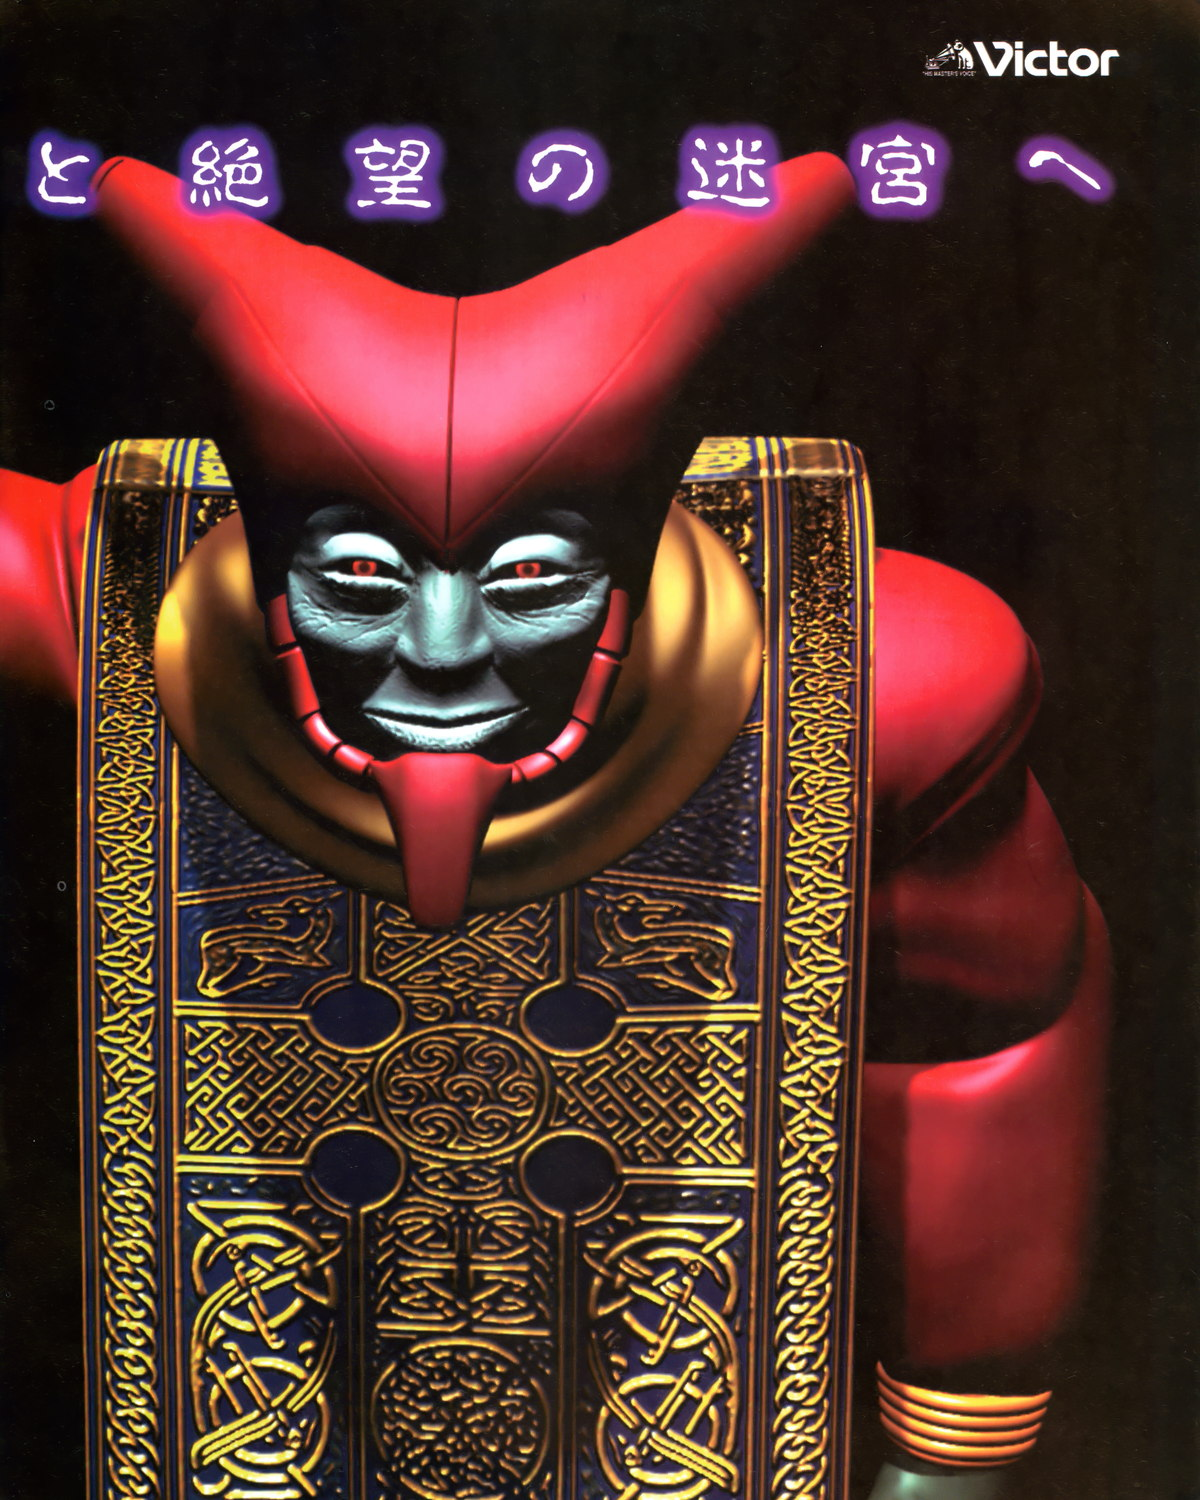 Dungeon Master Nexus Advertisement published in Japanese magazine 'Sega Saturn Magazine', Vol 11 10 April 1998, Page 3